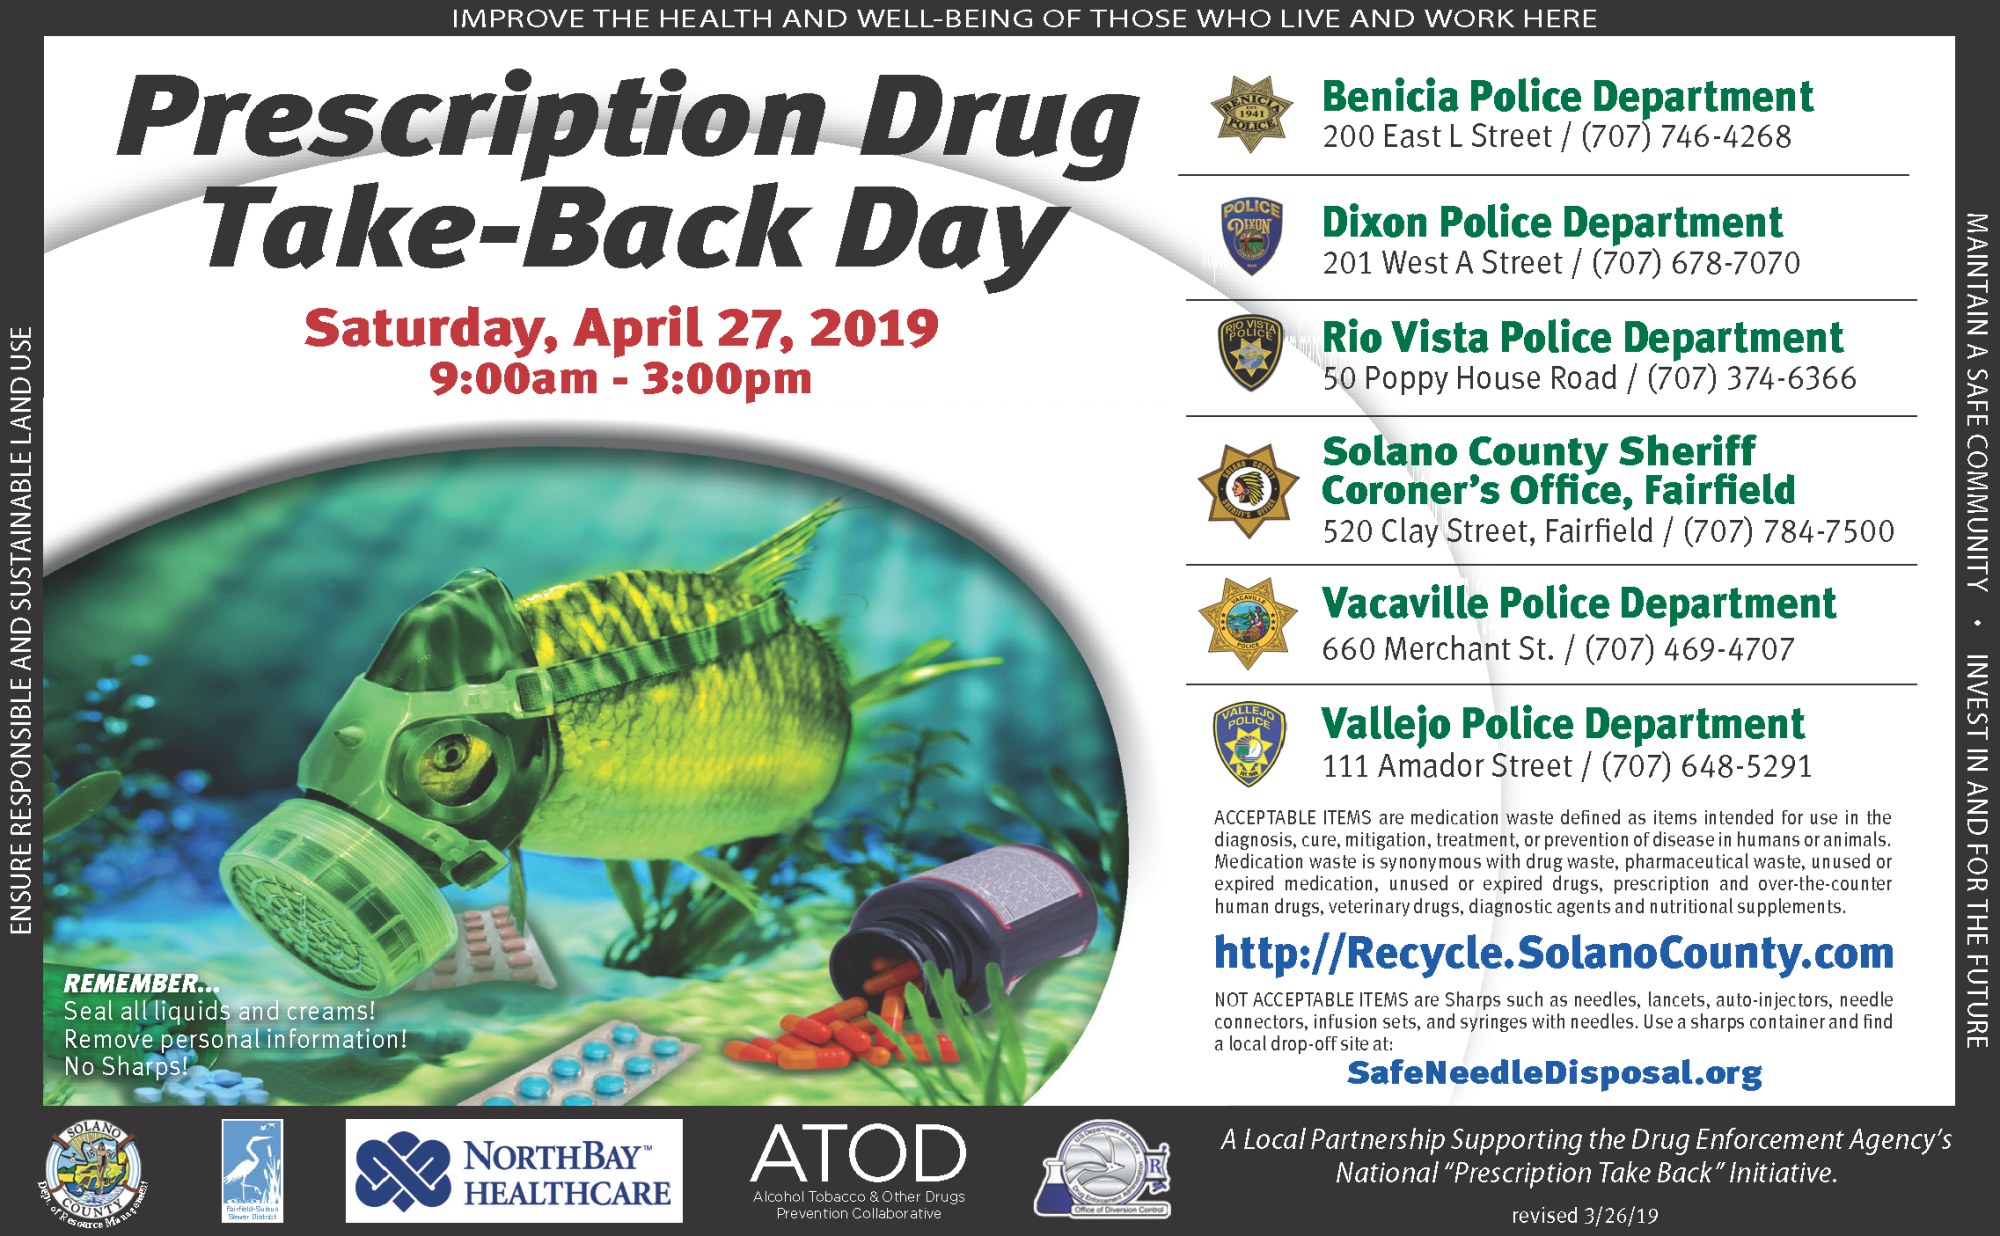 Apr 2019 Rx Take-Back Flyer Image